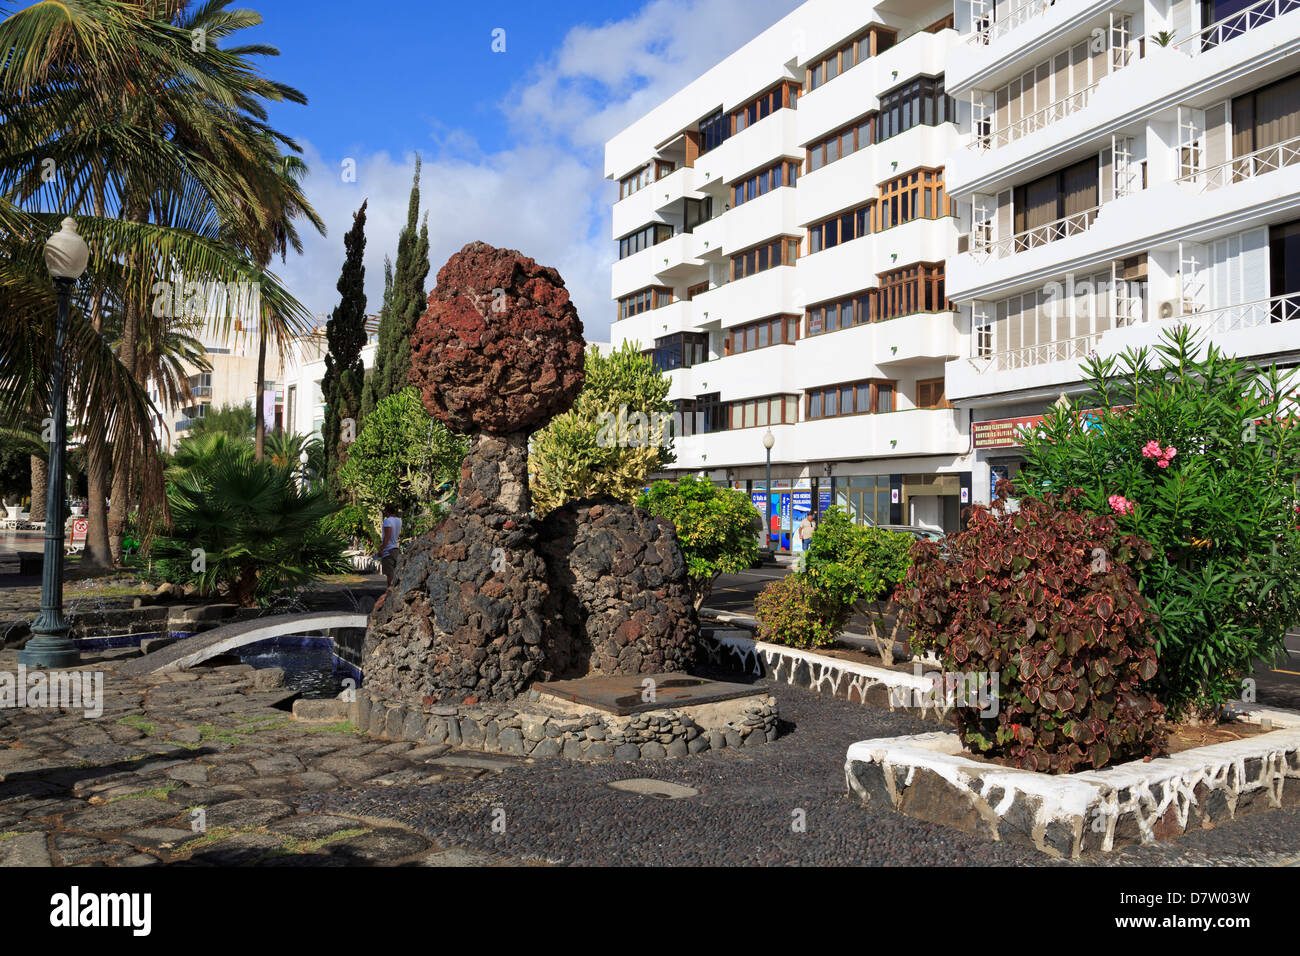 Volcanic rock on the waterfront, Arrecife, Lanzarote Island, Canary Islands, Spain - Stock Image